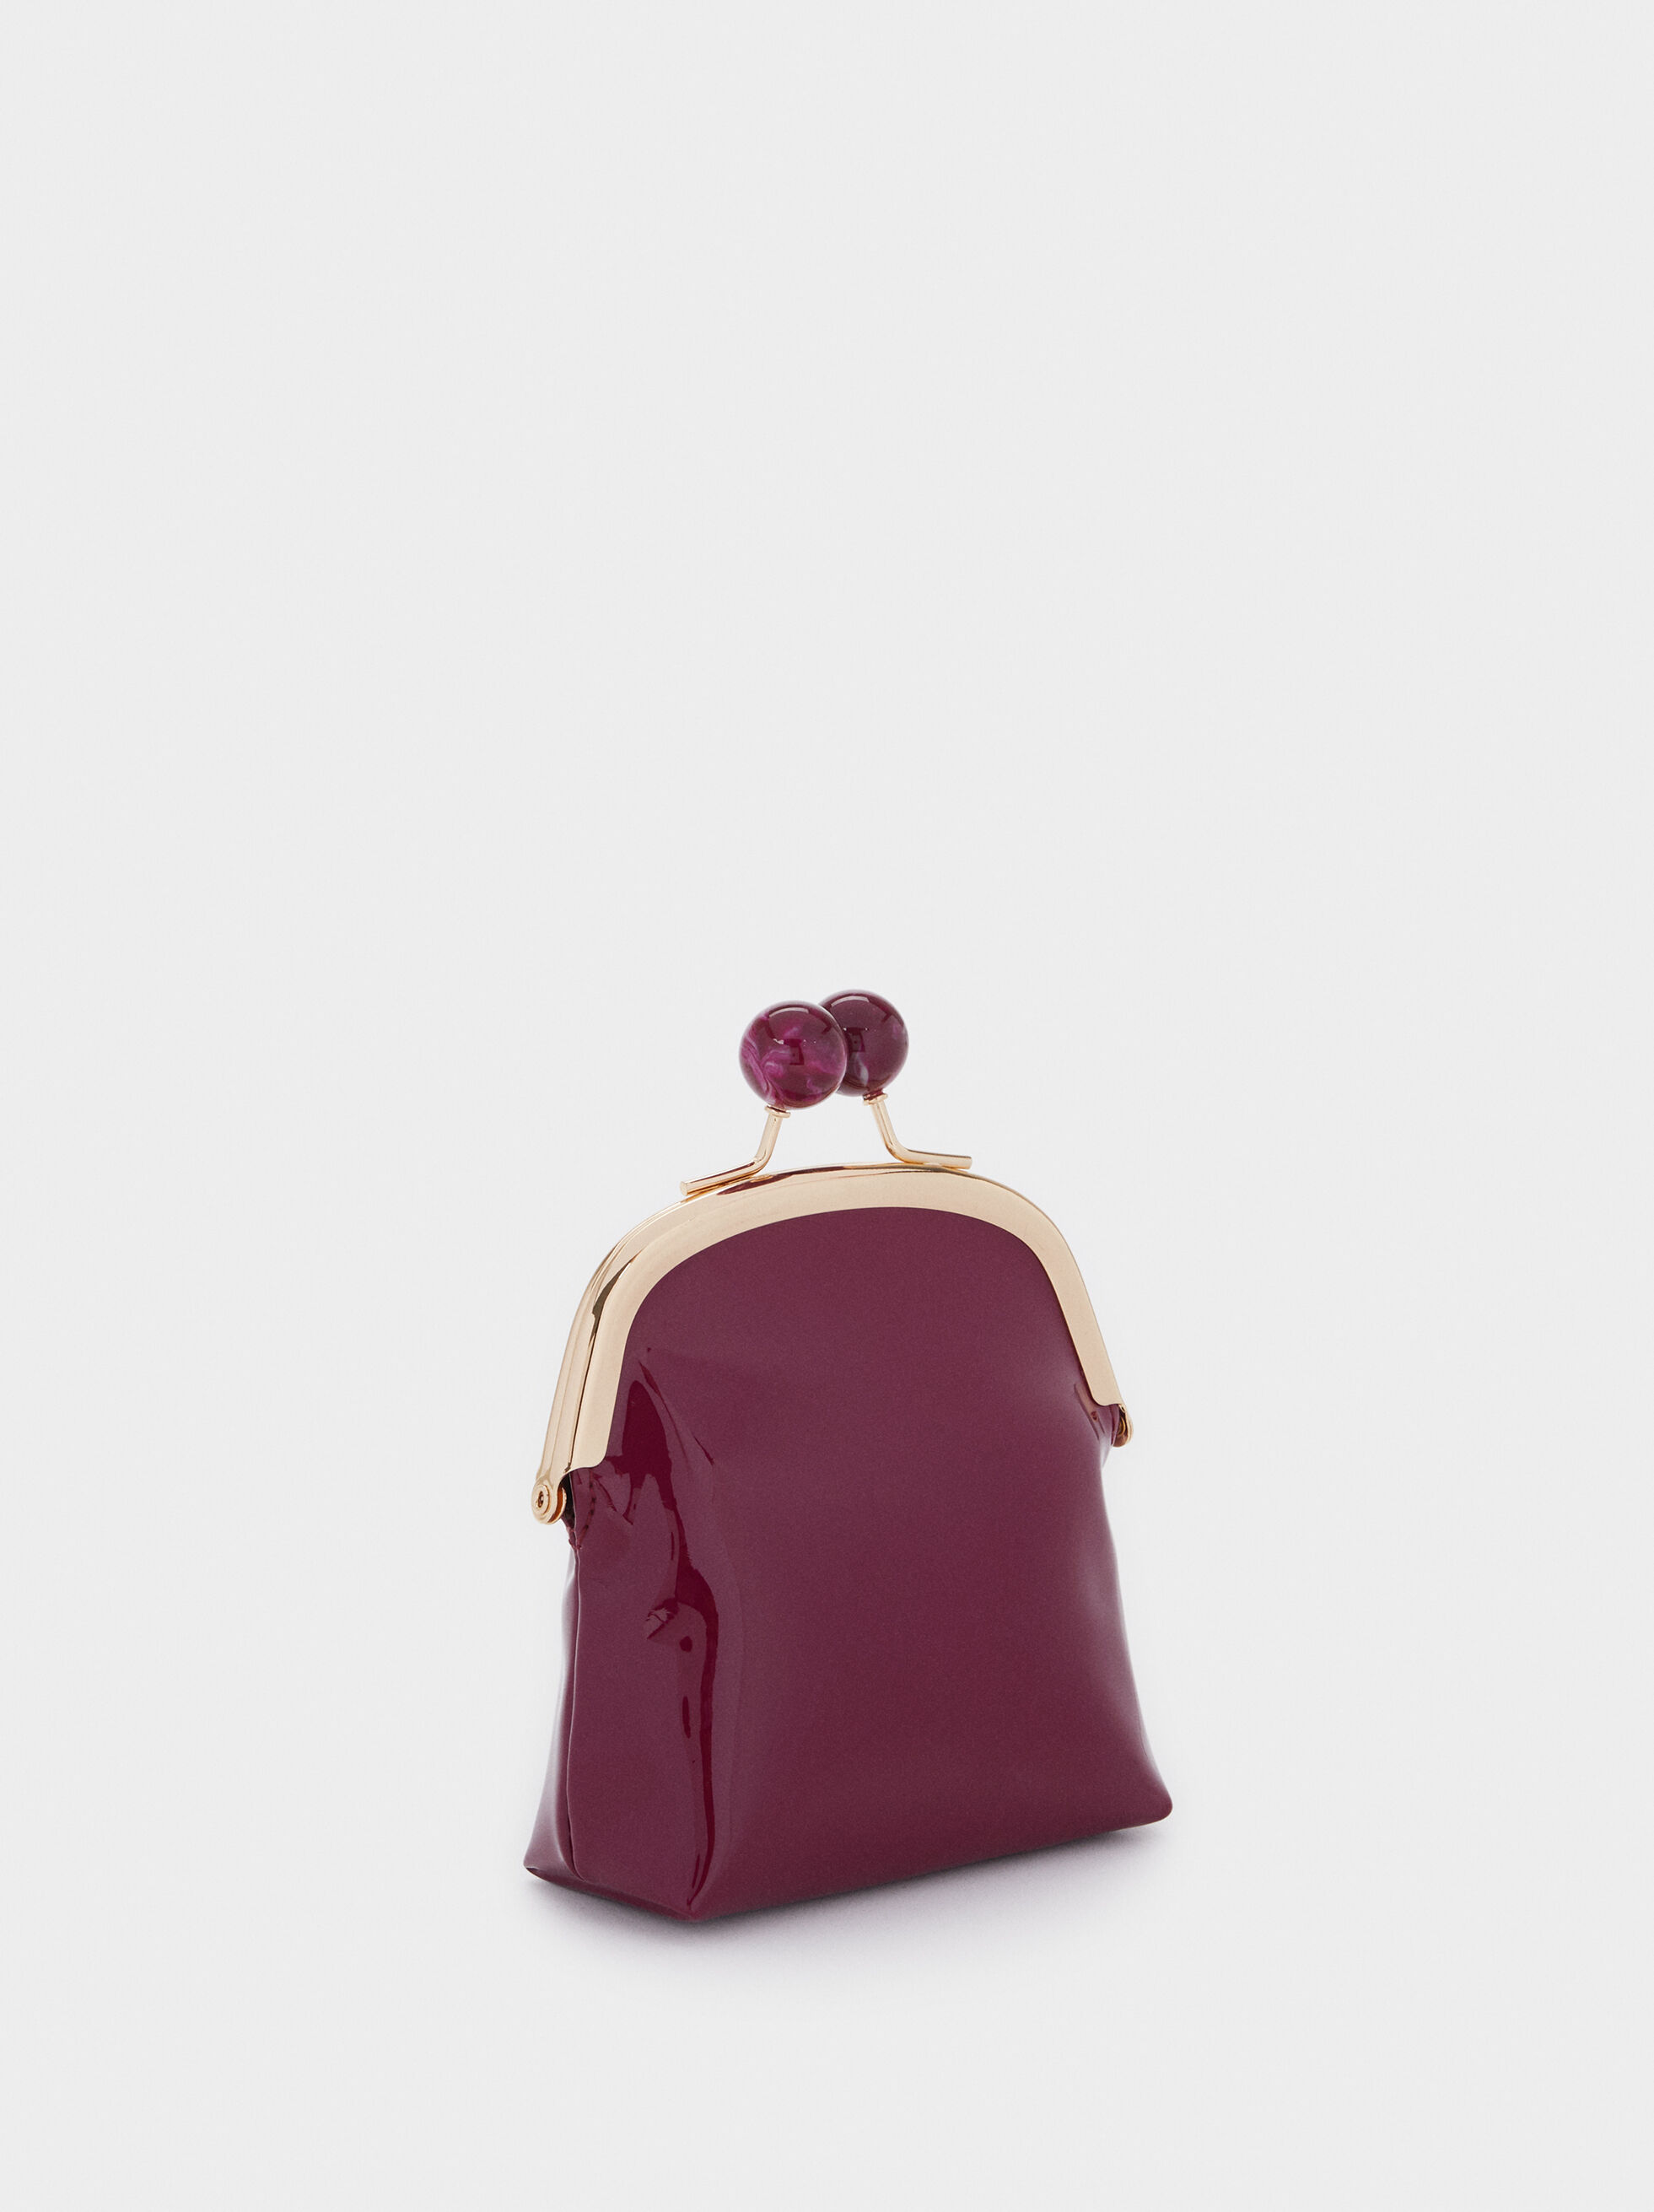 Vinyl Purse With Clasp Closure, Bordeaux, hi-res